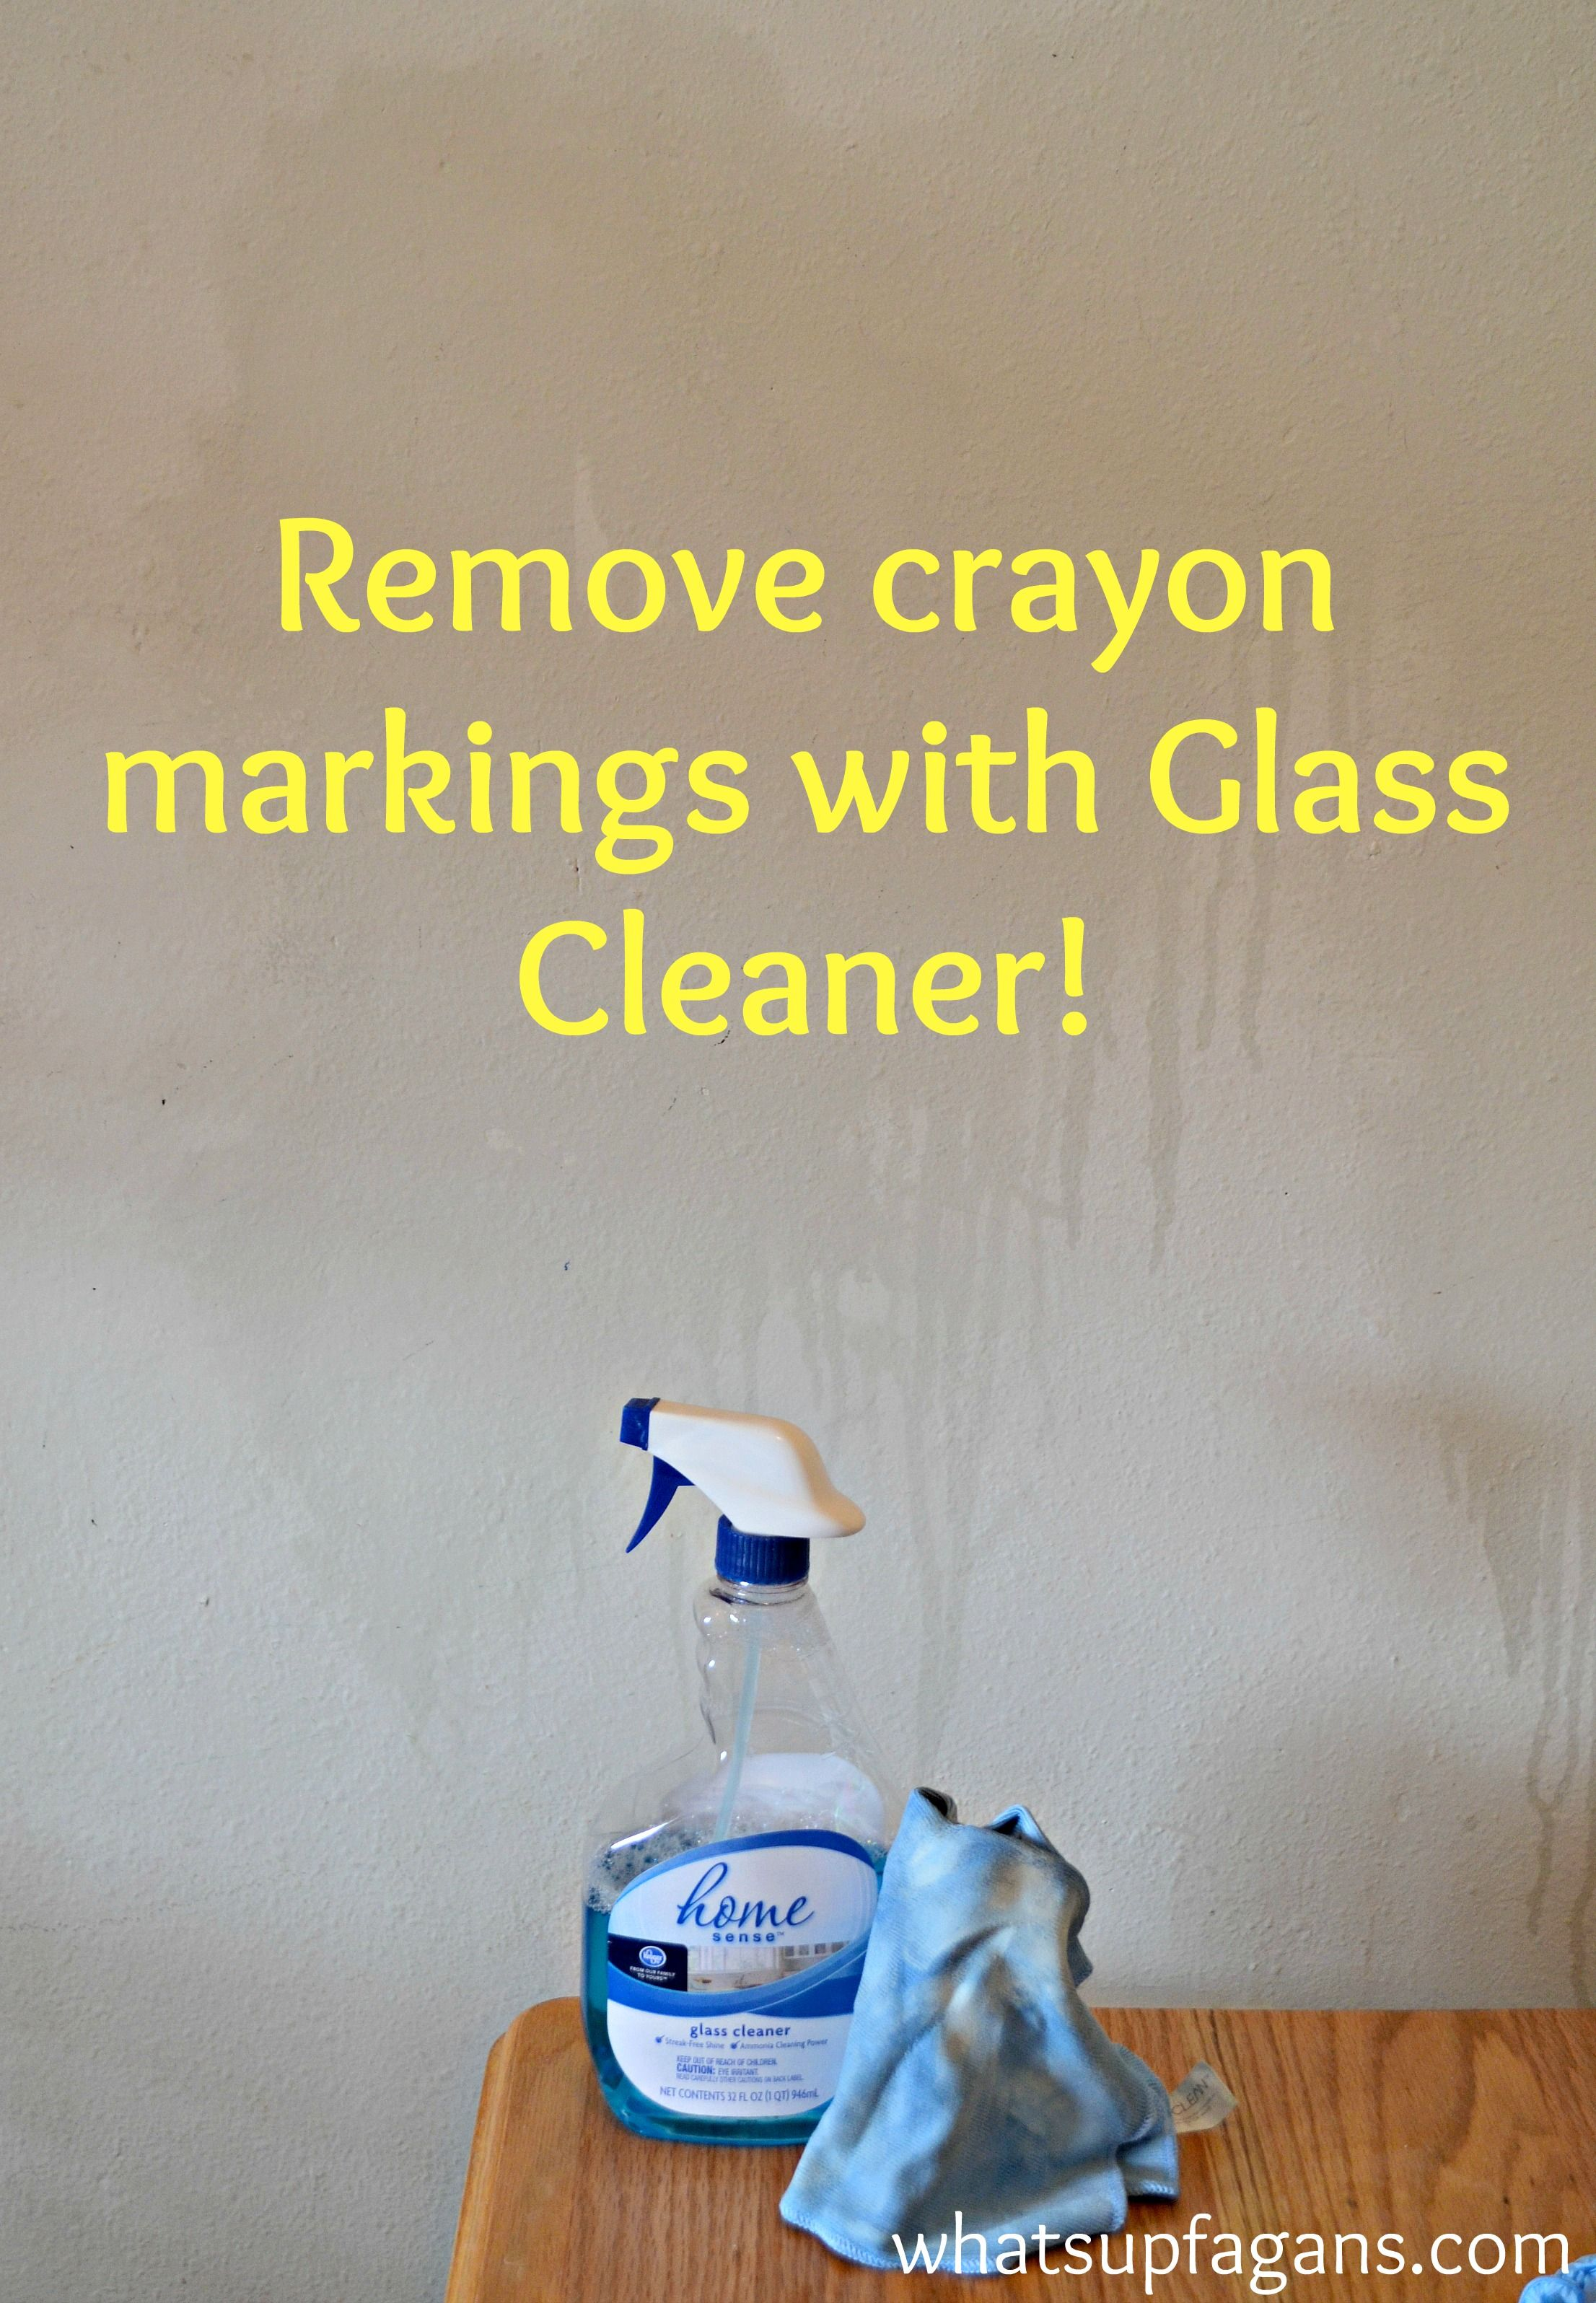 How to clean mold off walls - Methods That Really Work To Remove Crayon From Walls